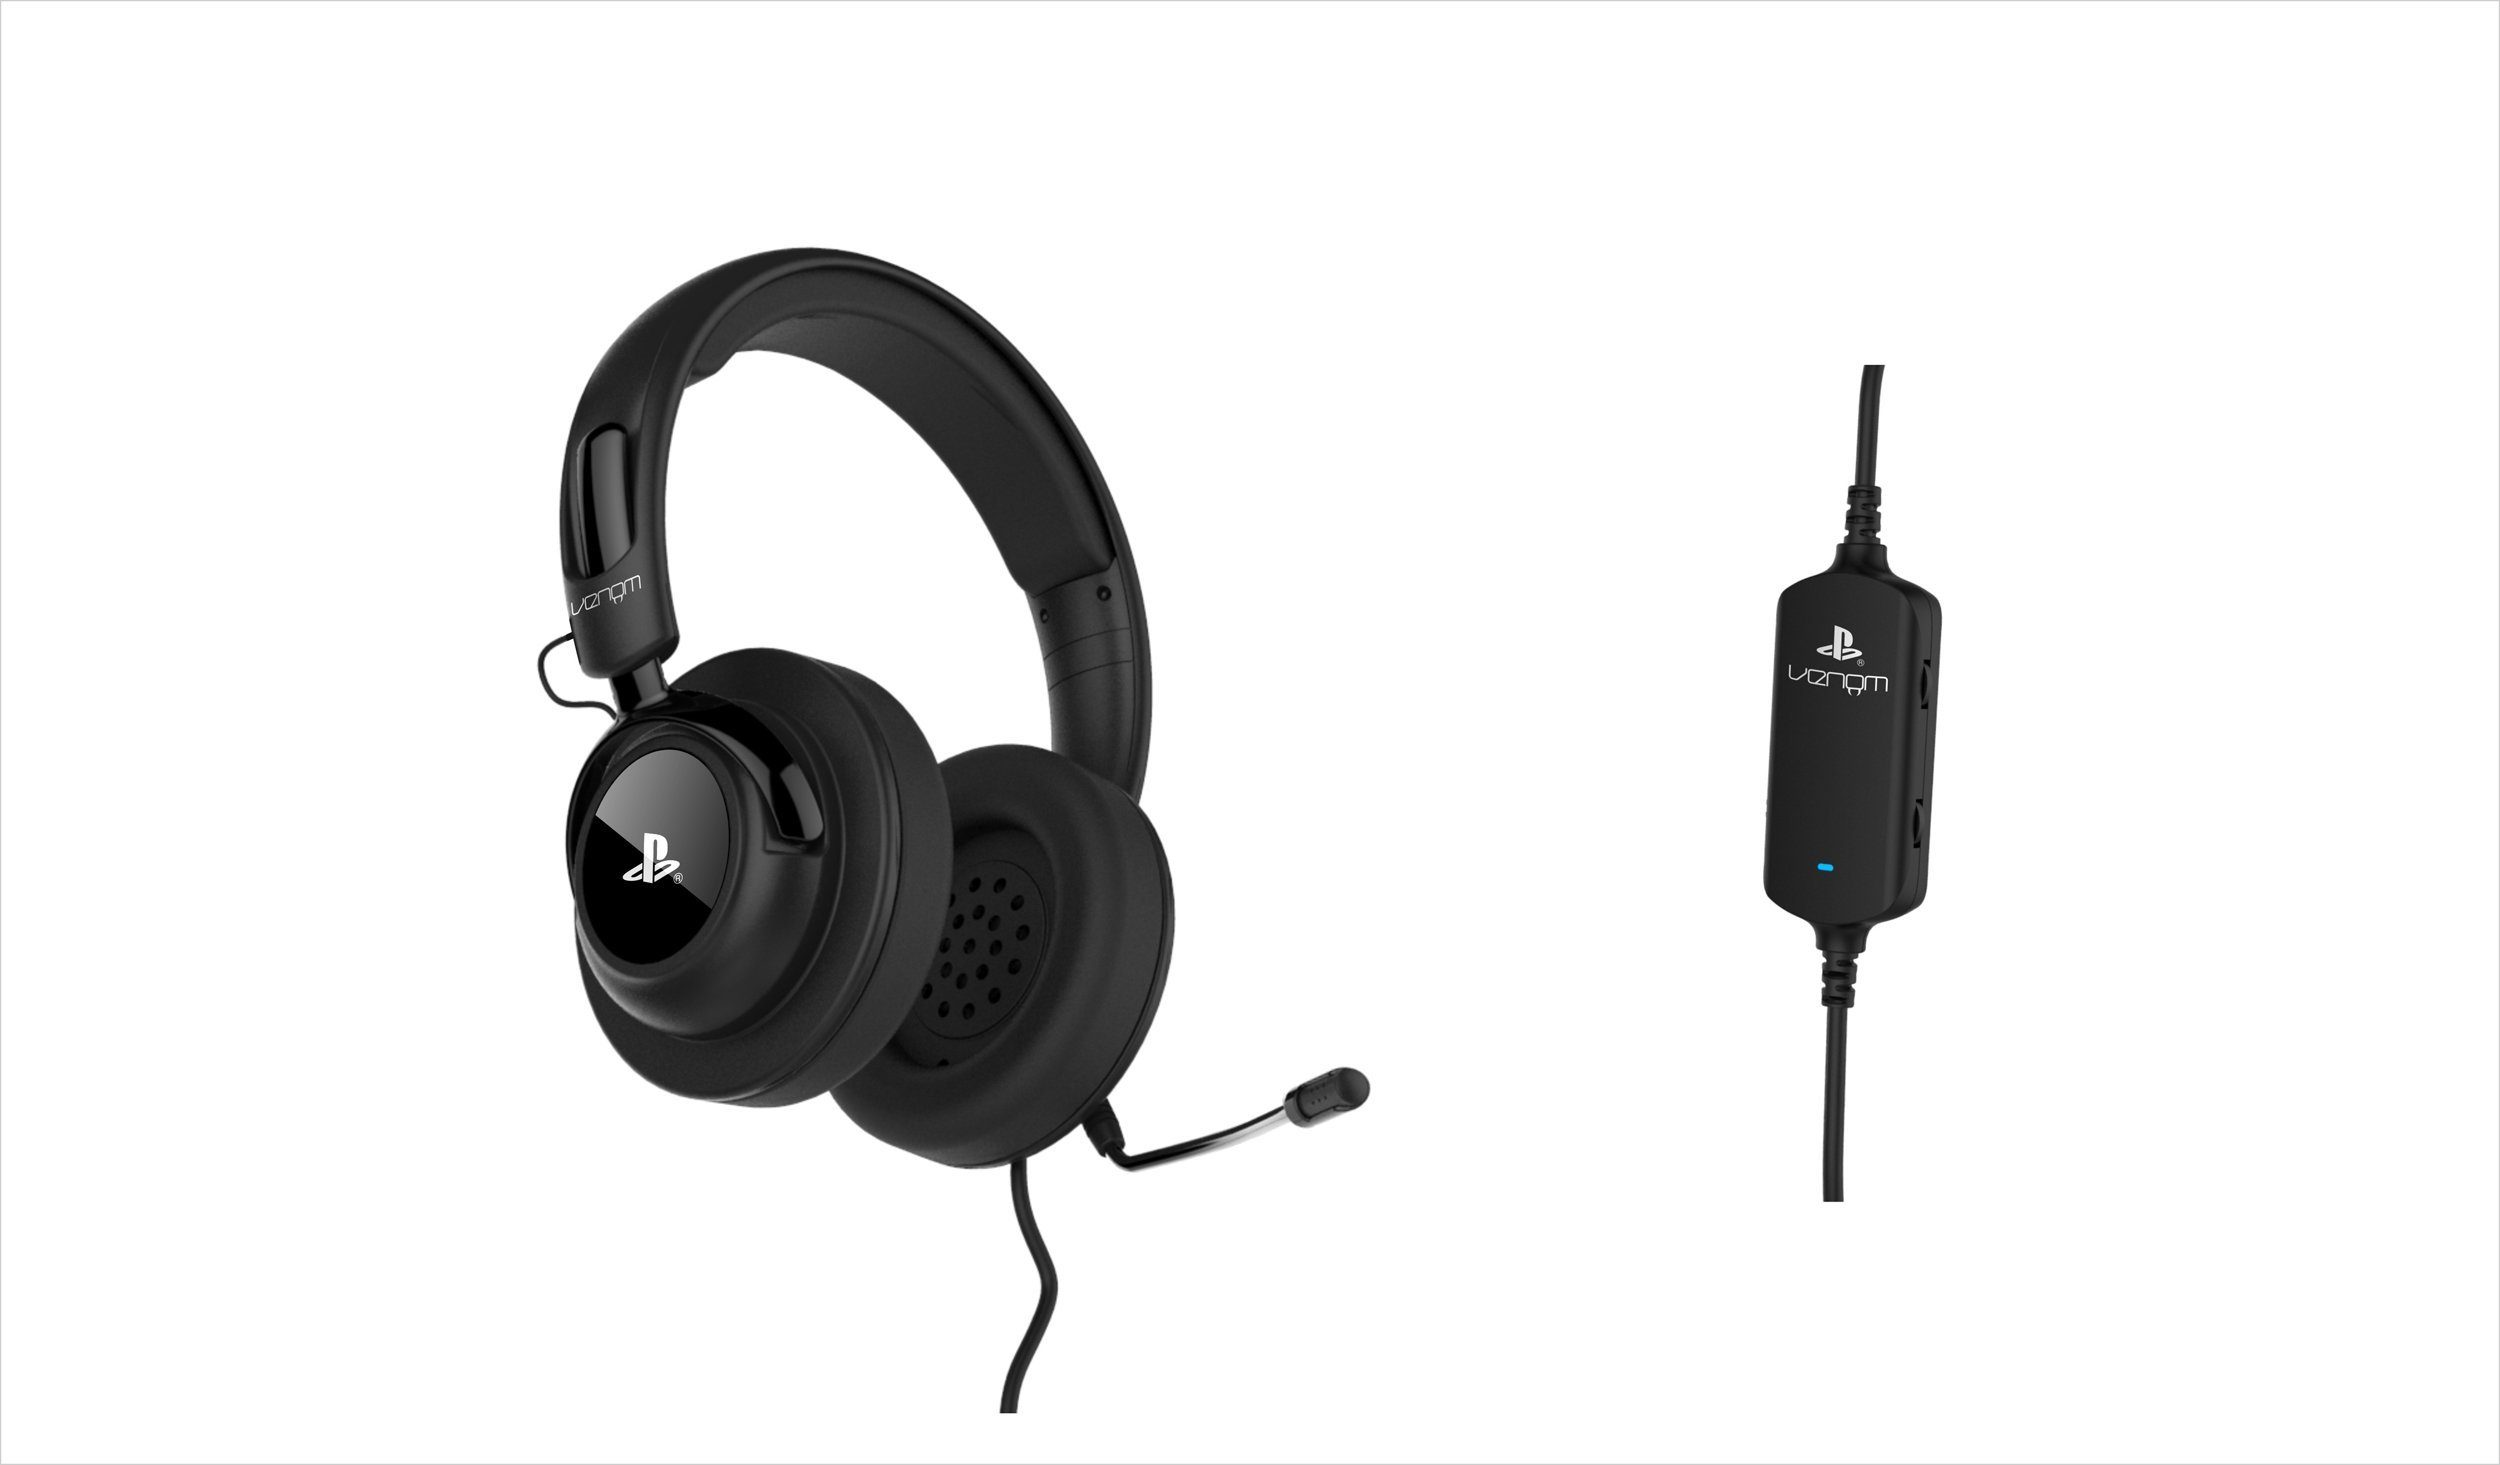 Snakebyte Sony Vibration Stereo Gaming Headset in Schwarz (Sony Lizenz) »(PS4 PS3)«